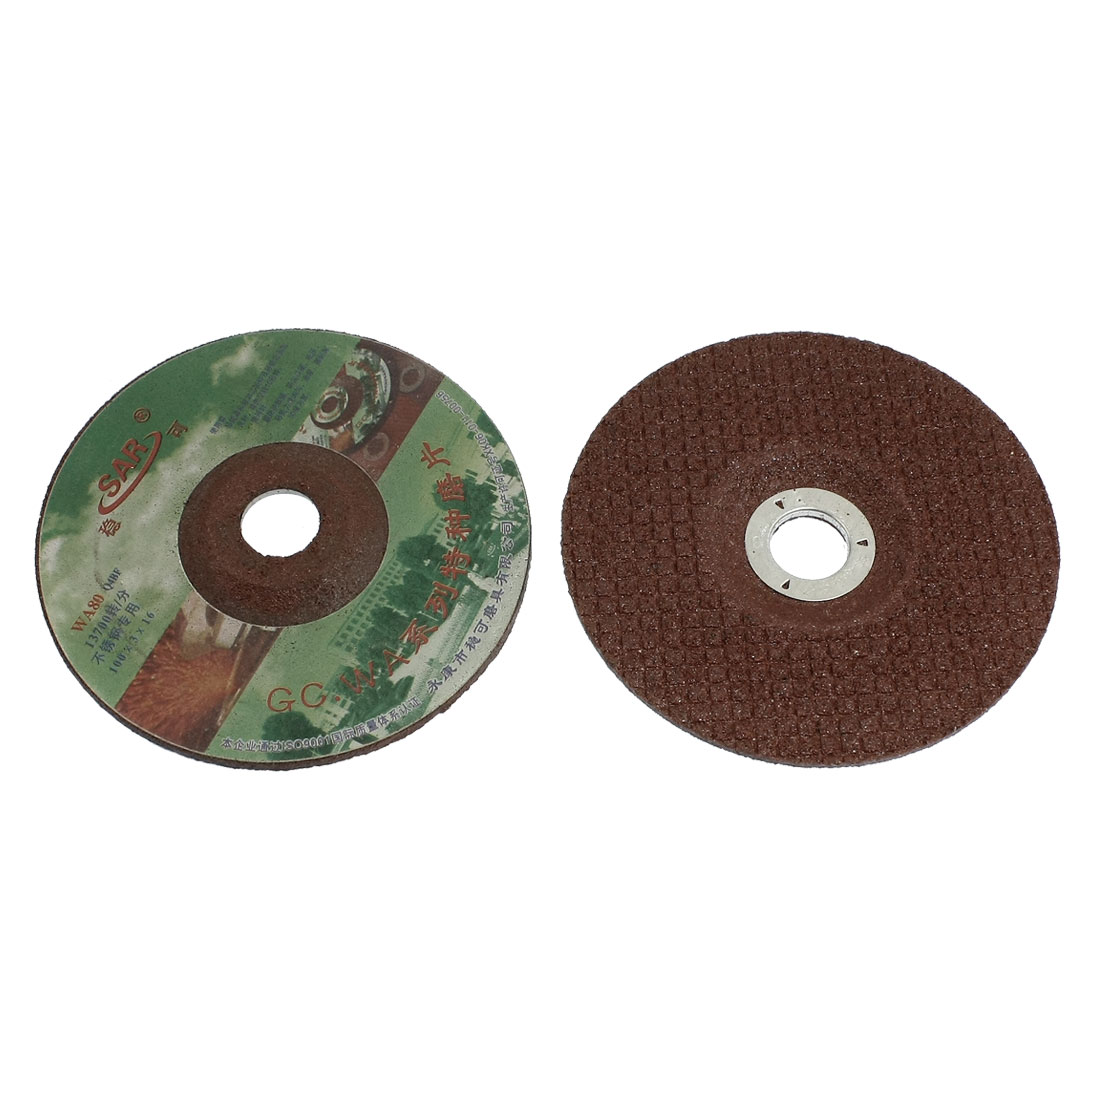 2 Pcs 102mm Outside Dia Grinding Discs Wheels for Stainless Steel Polishing Coffee Color